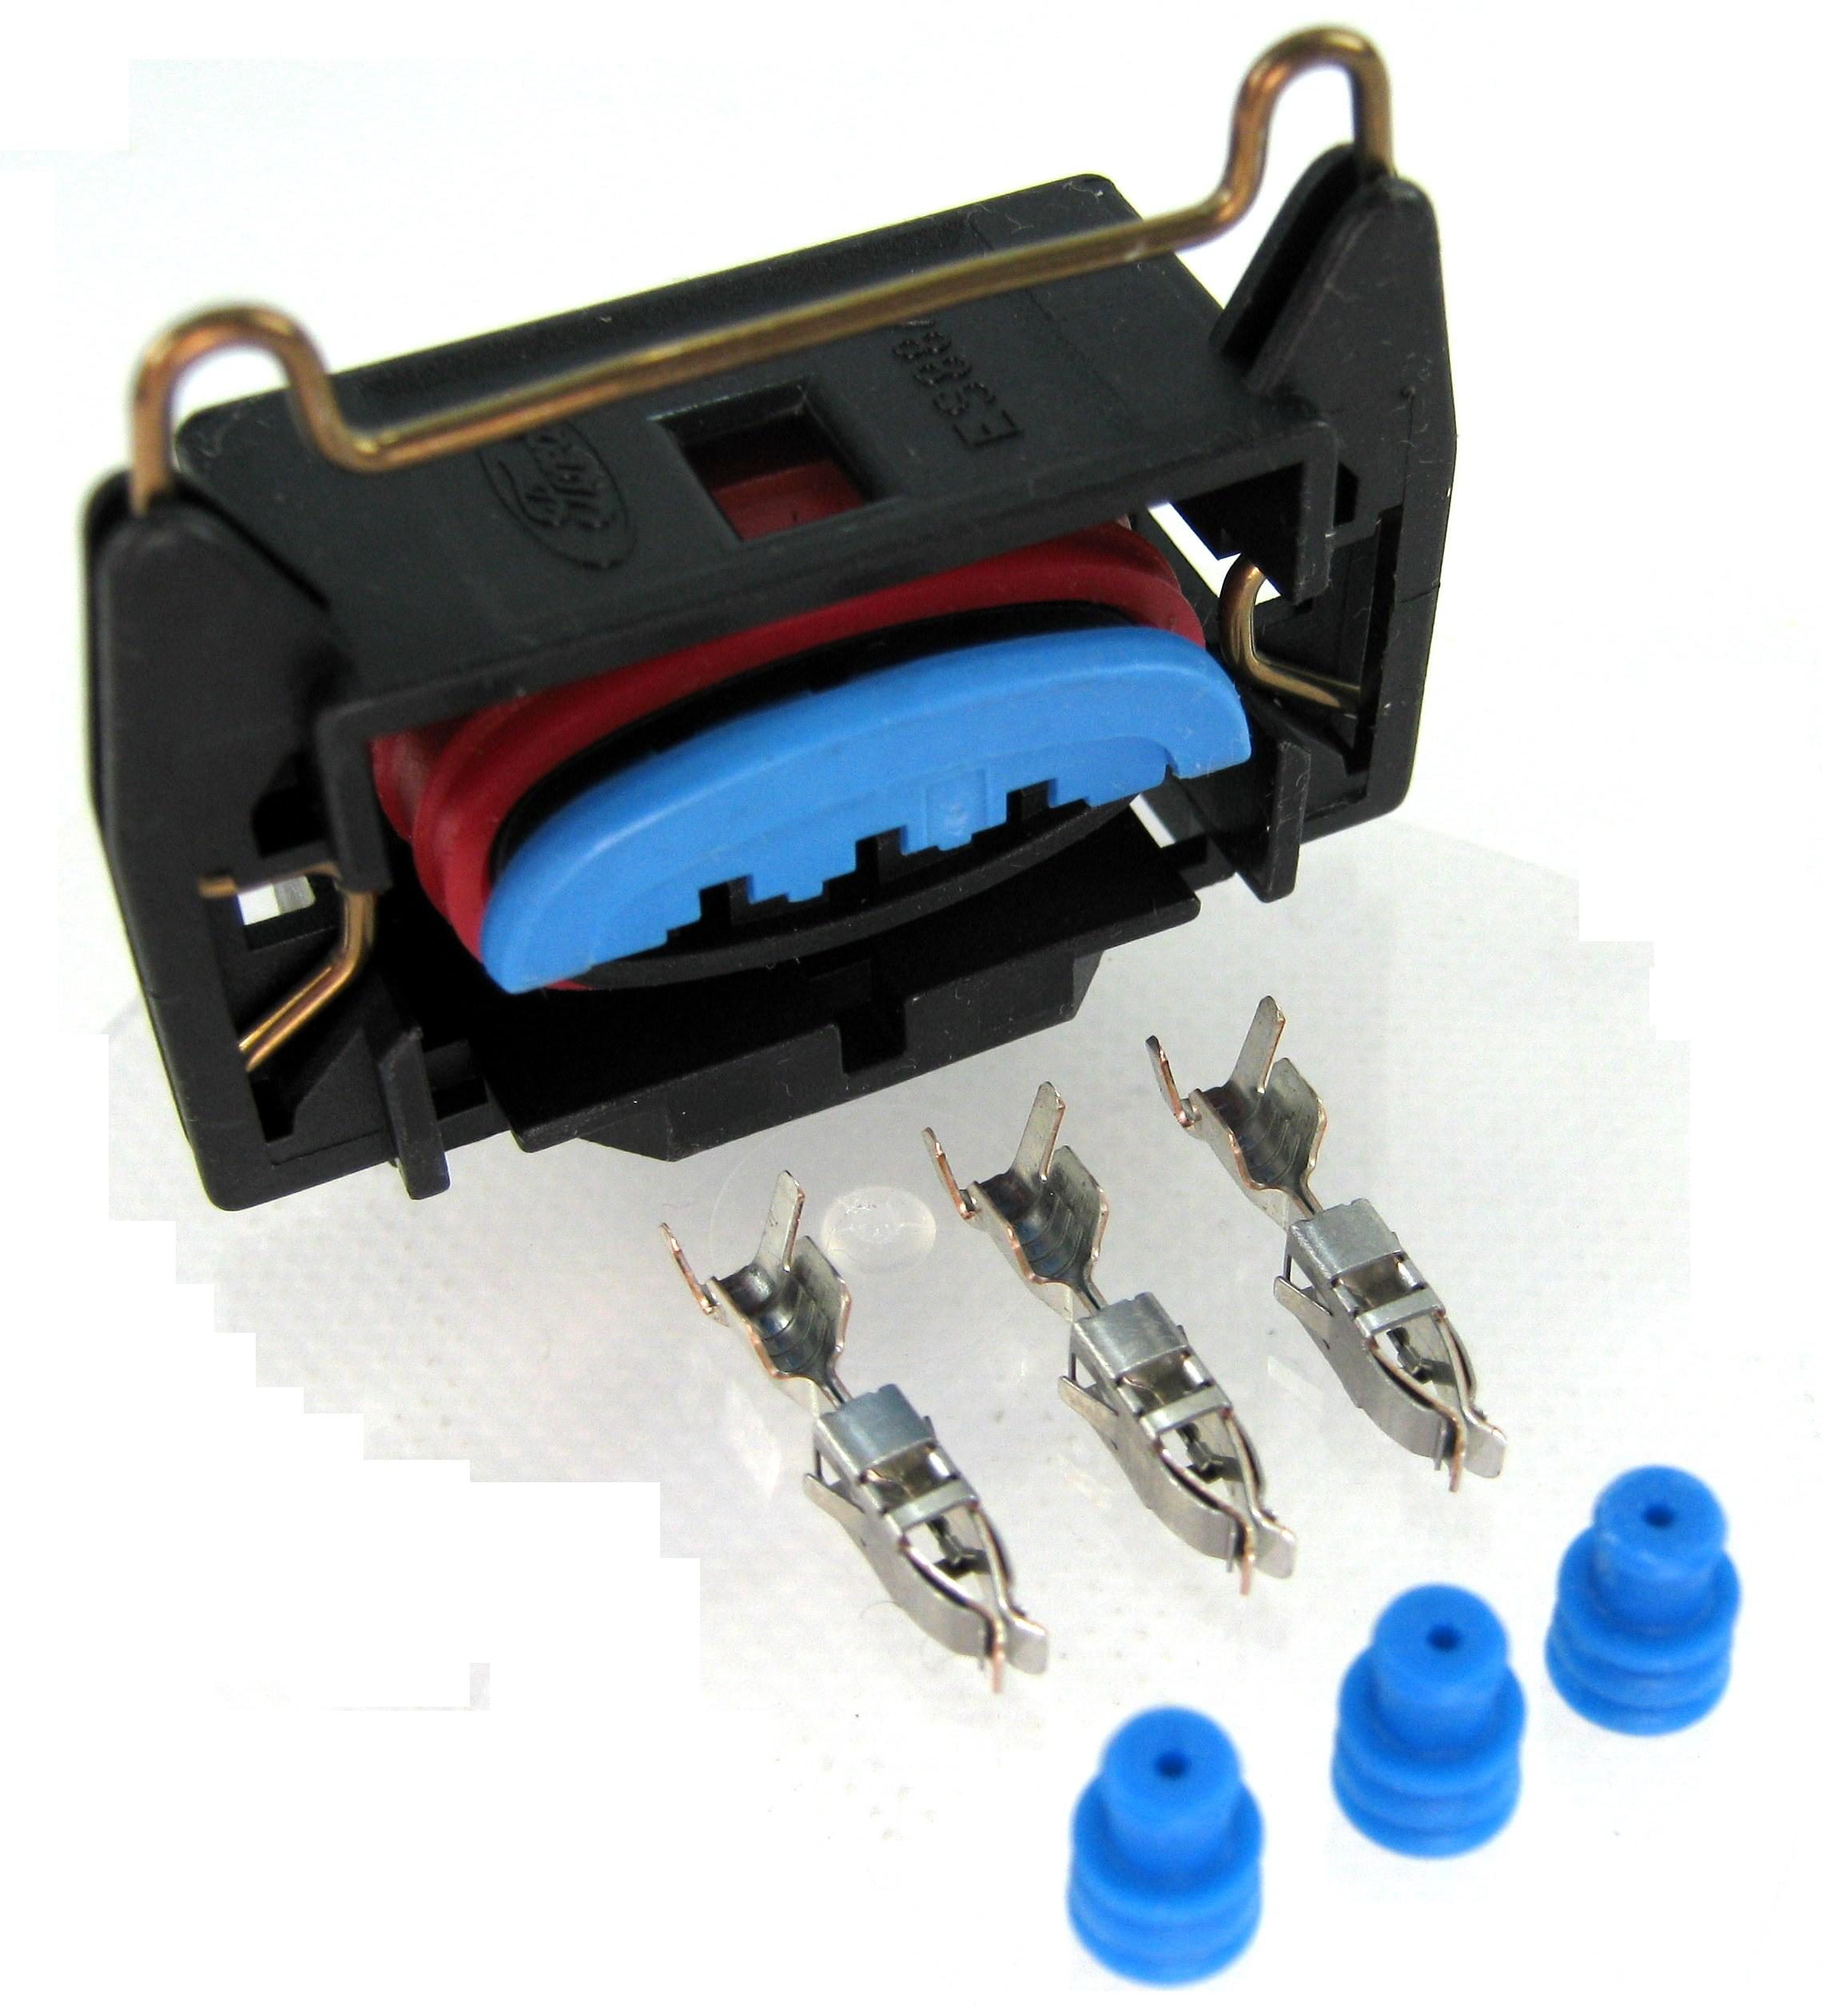 Details about EDIS coil pack connector plug kit Megasquirt new kitcar mega  squirt ECU for Ford